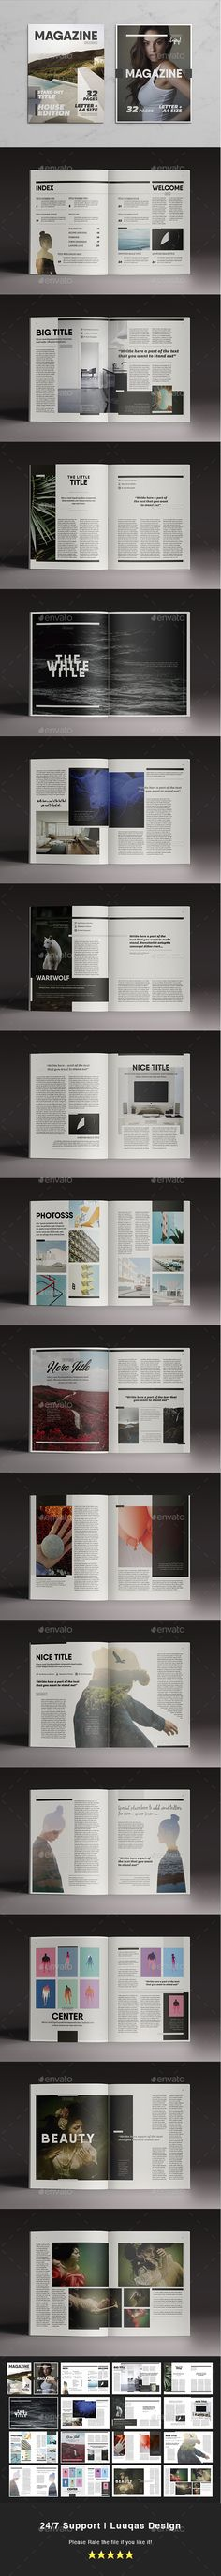 Multipurpose Magazine 7 — InDesign Template #indesign template #minimalist • Download ➝ https://graphicriver.net/item/multipurpose-magazine-7-indesign-template/16819335?ref=pxcr